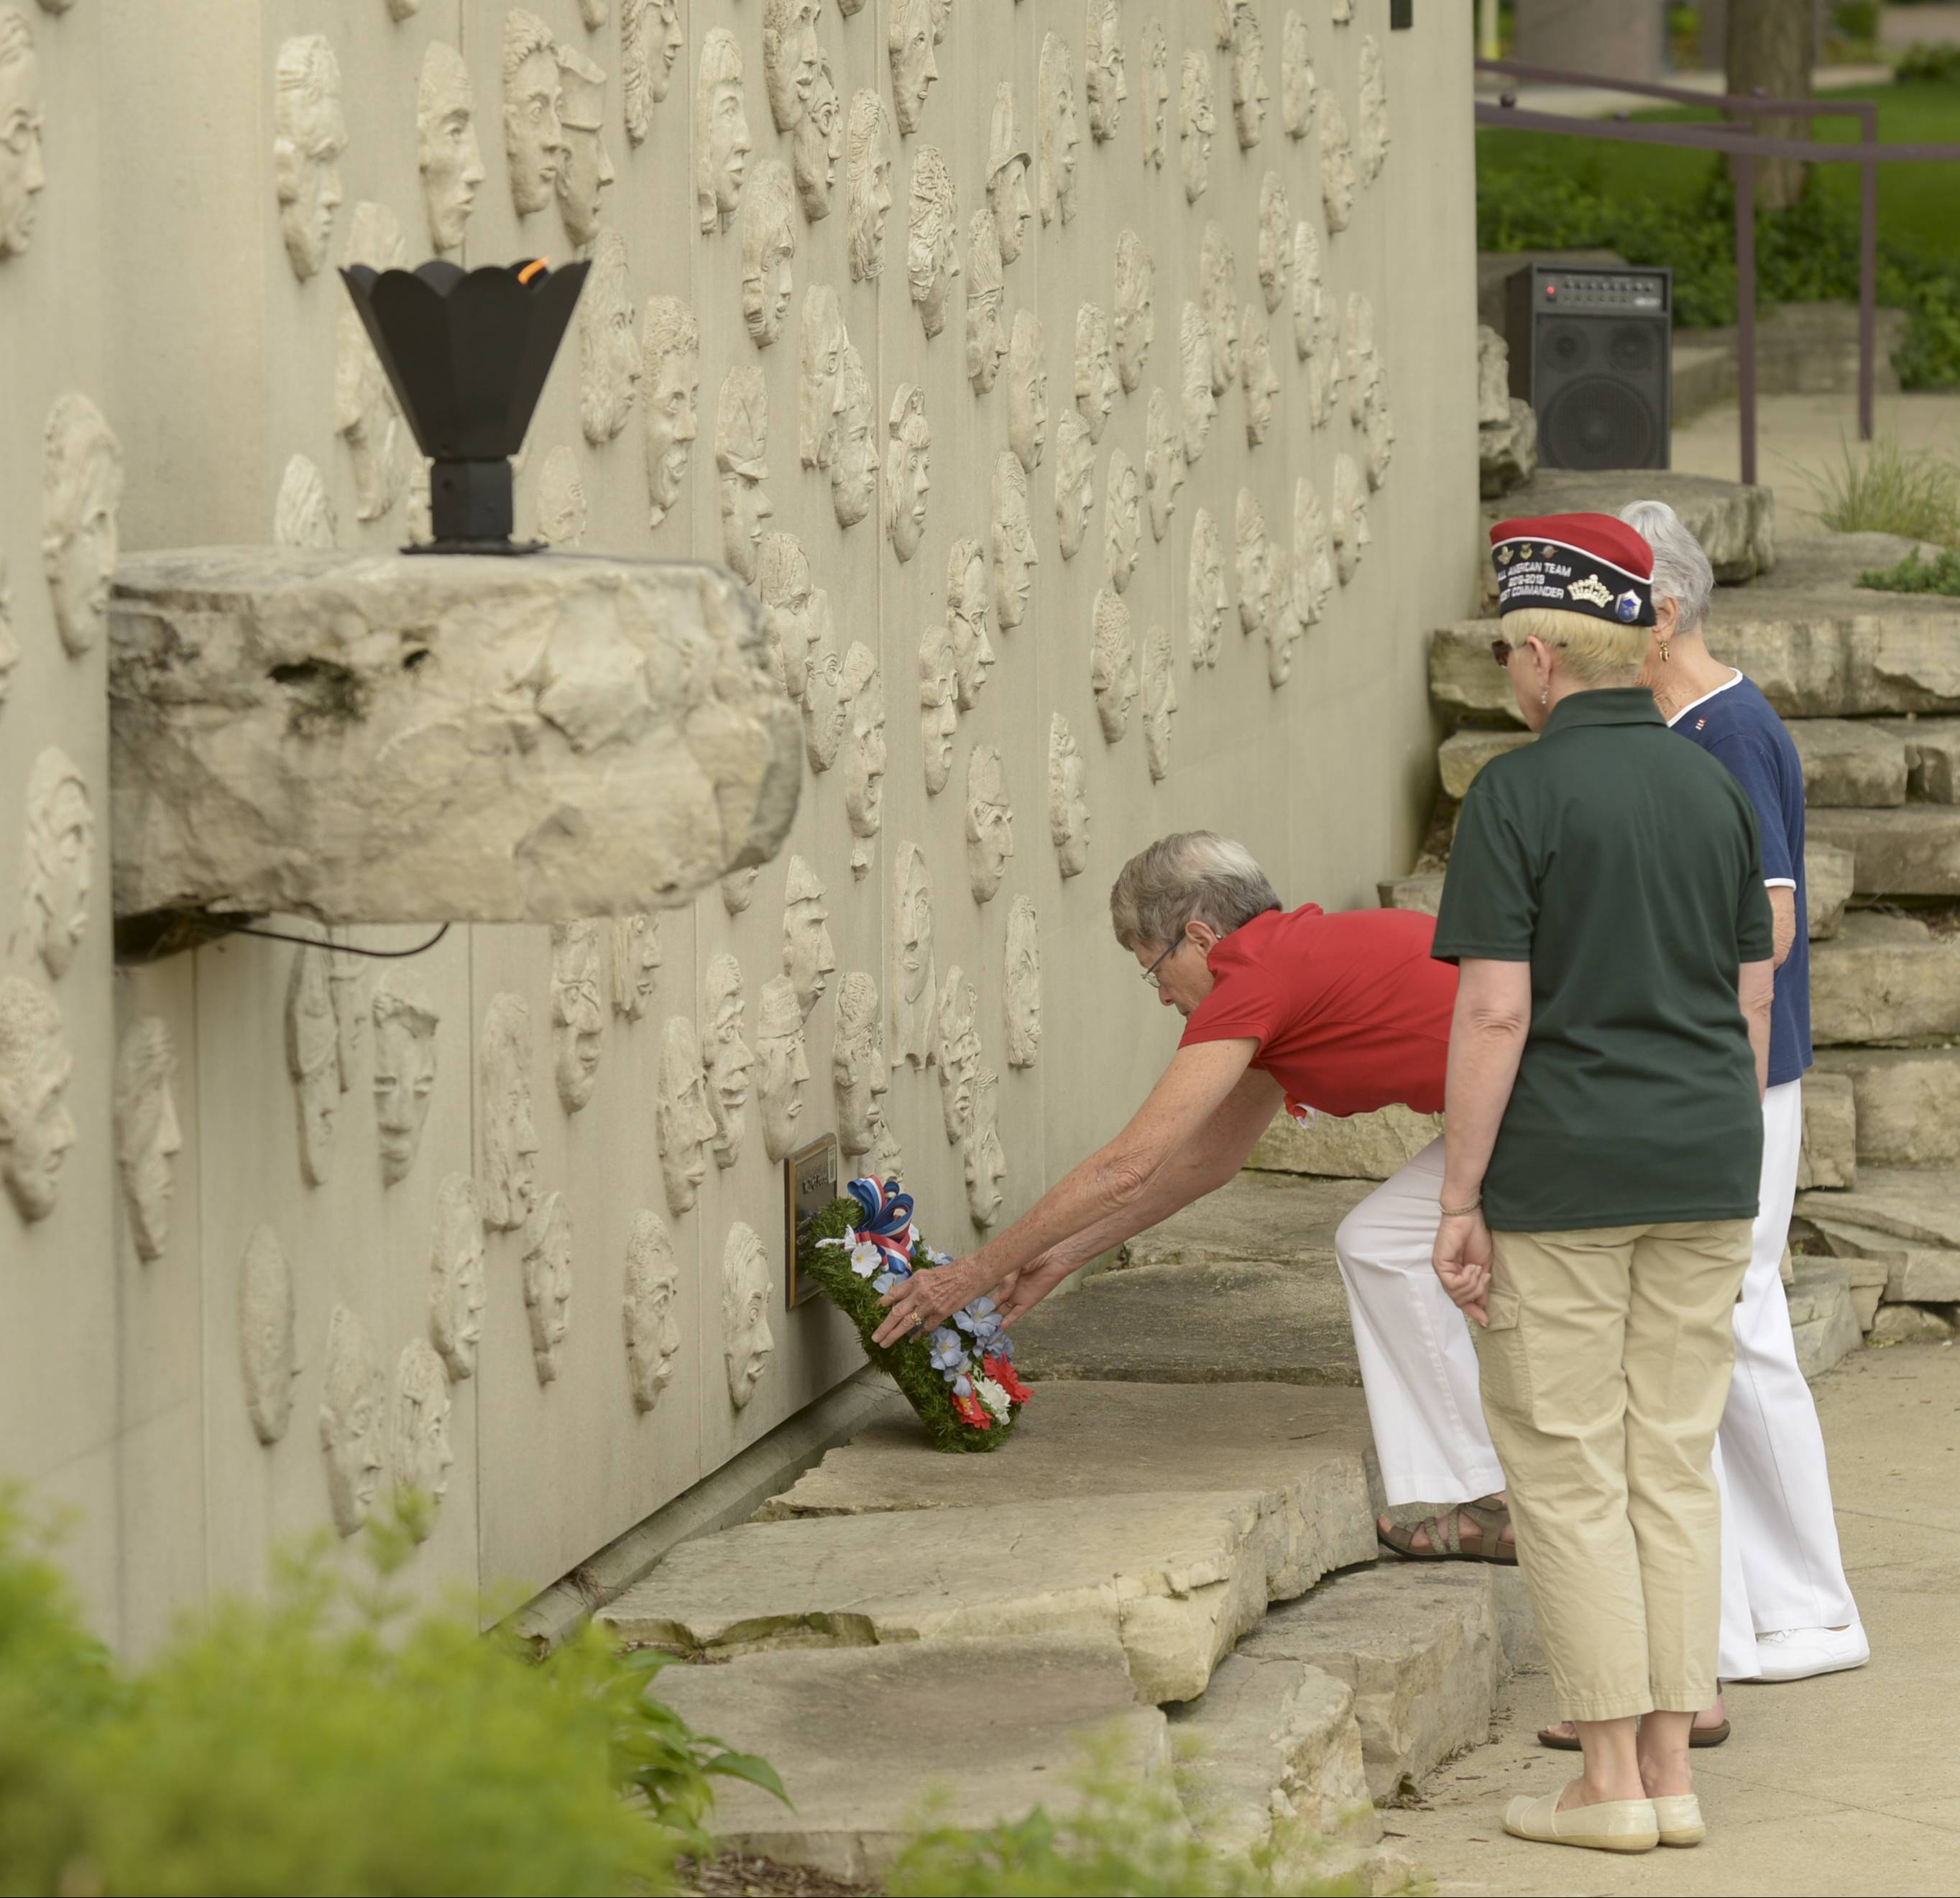 Pat Shanower places a wreath at the memorial named for her son Dan, who was killed in the Sept 11 attacks while working at the Pentagon, during Naperville's Memorial Day service.